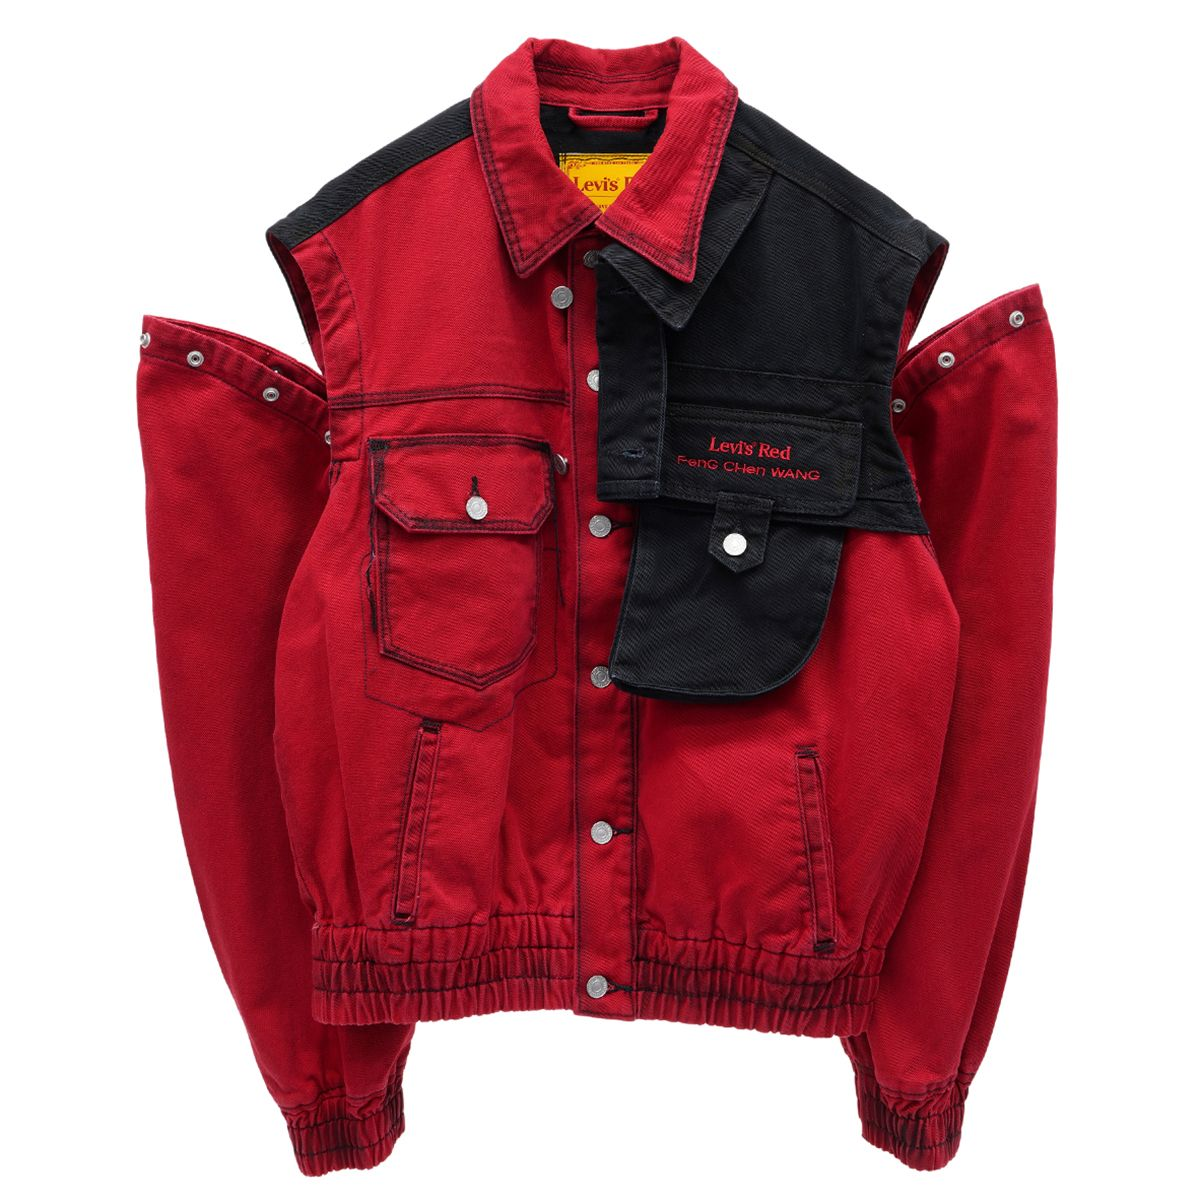 Feng Chen Wang x Levi's Red OVERSIZED JACKET / RED-BLACK